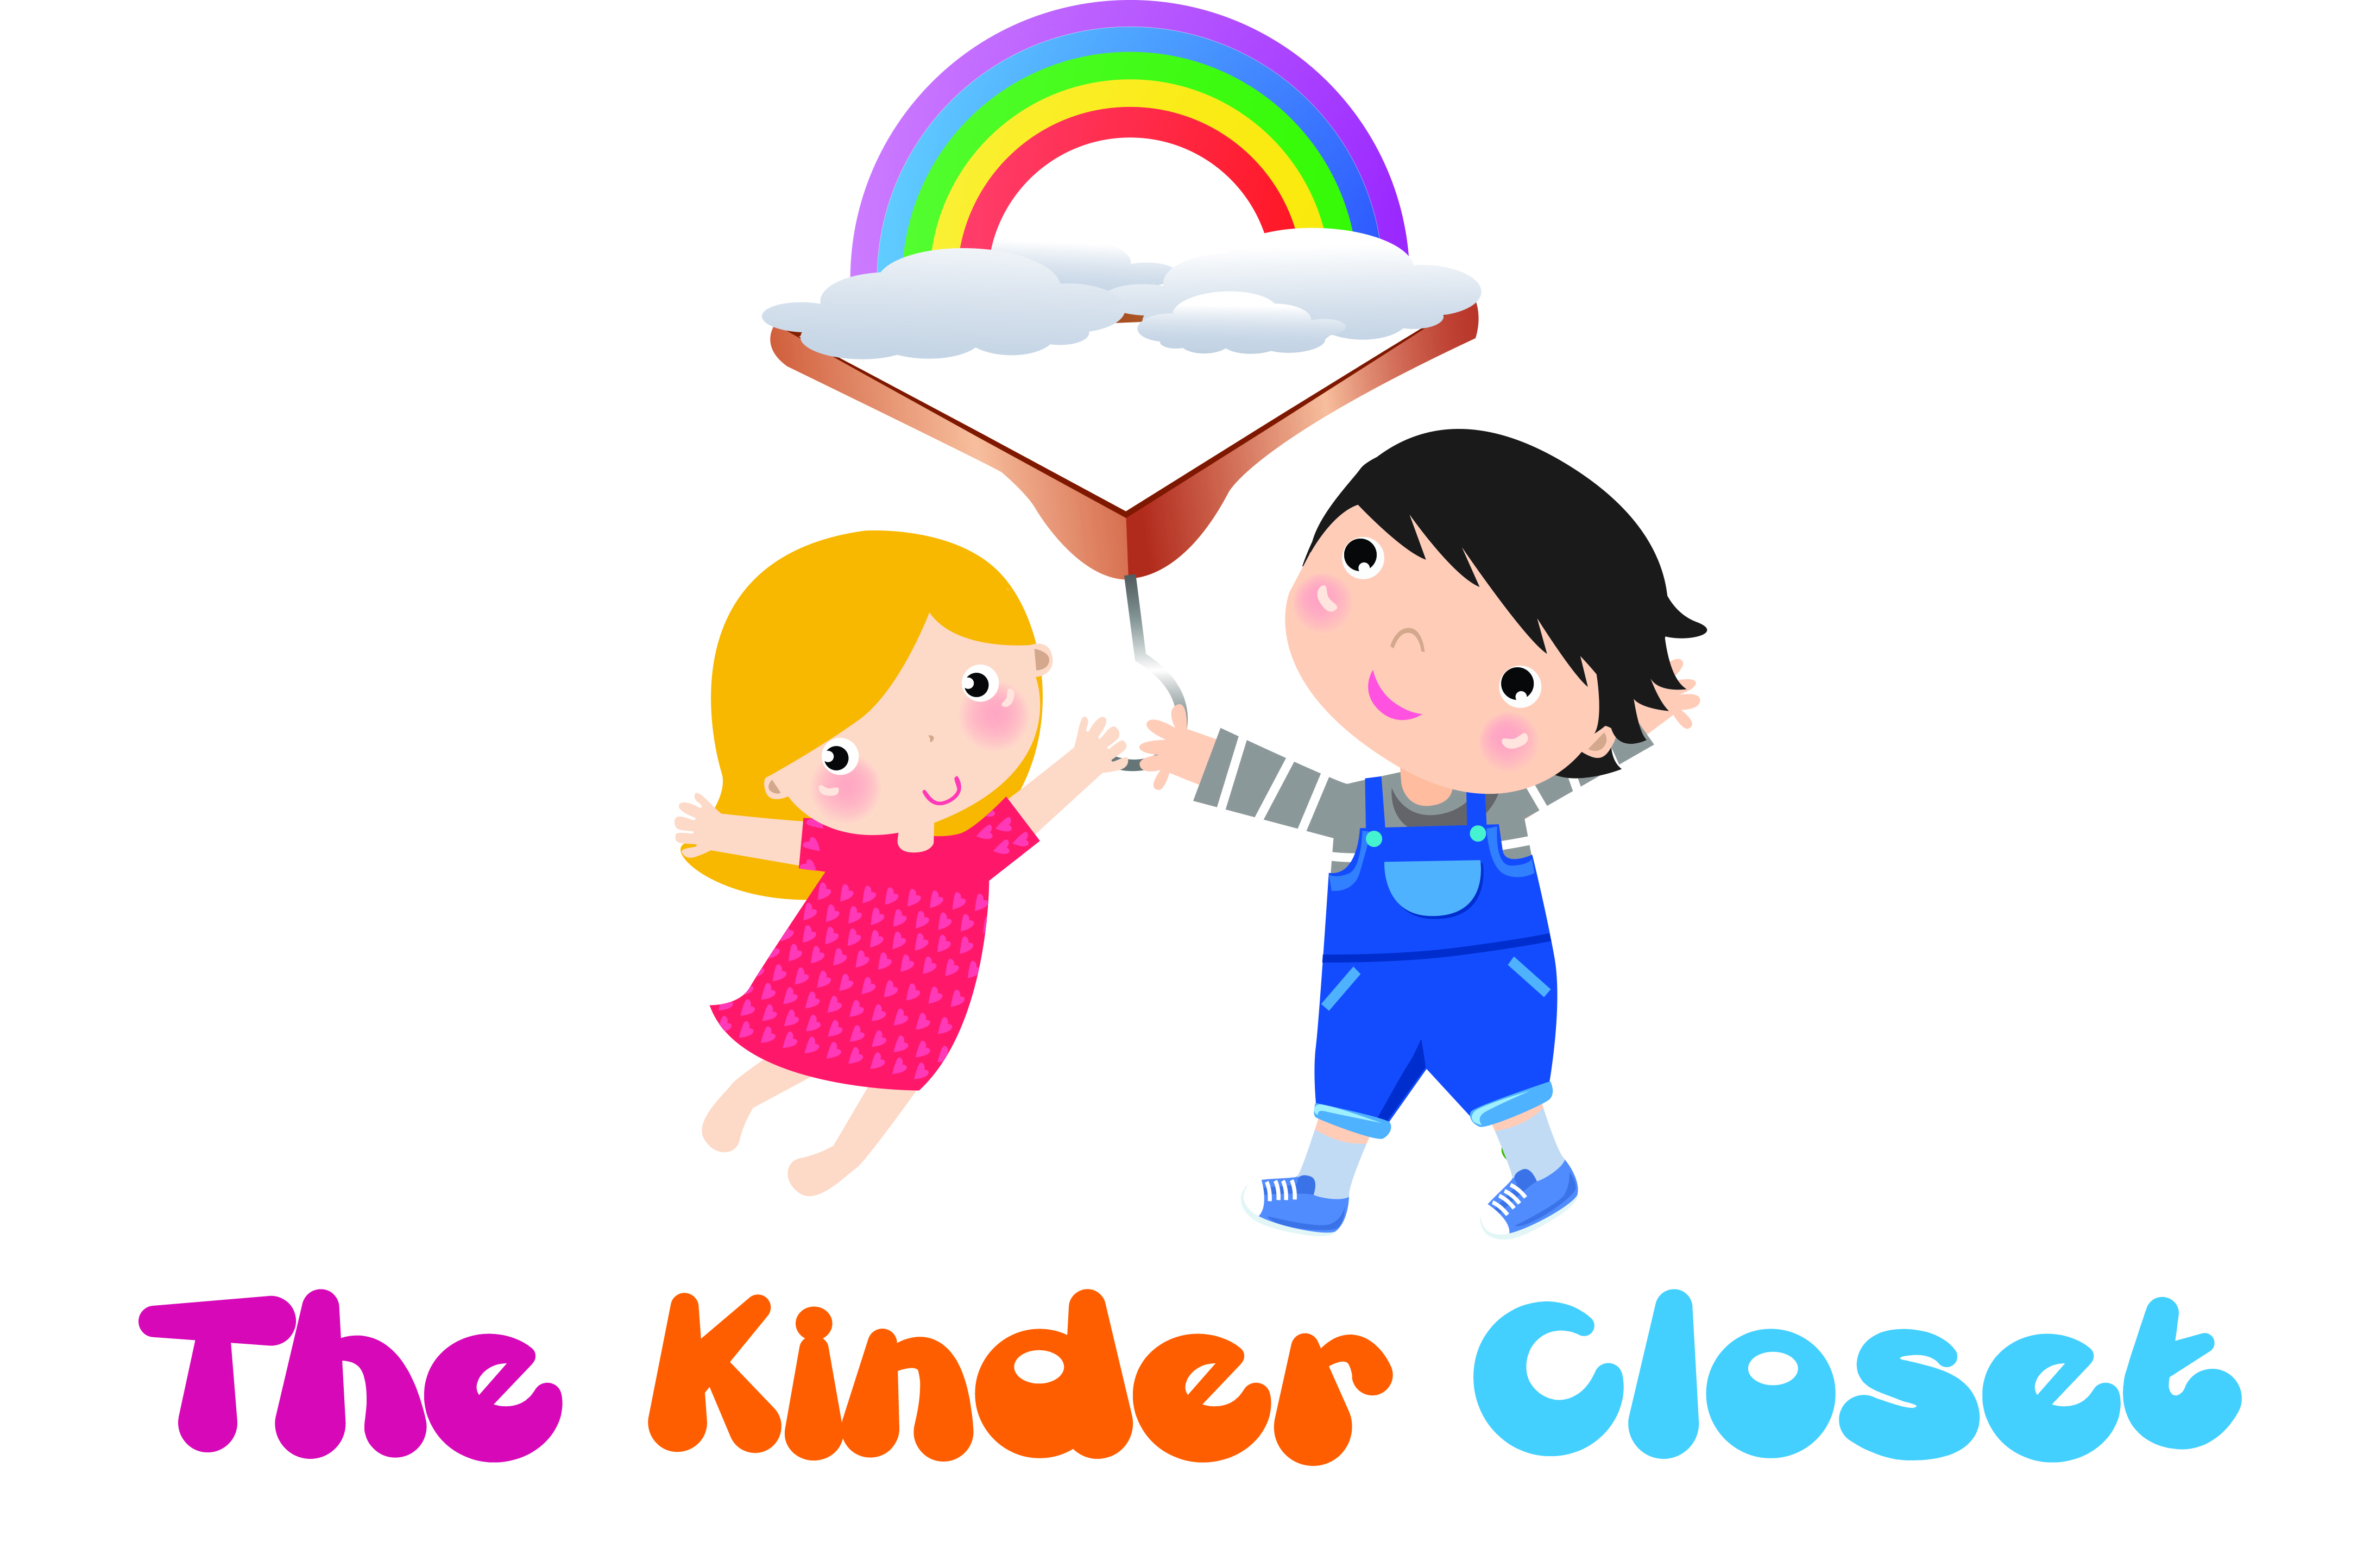 The Kinder Closet